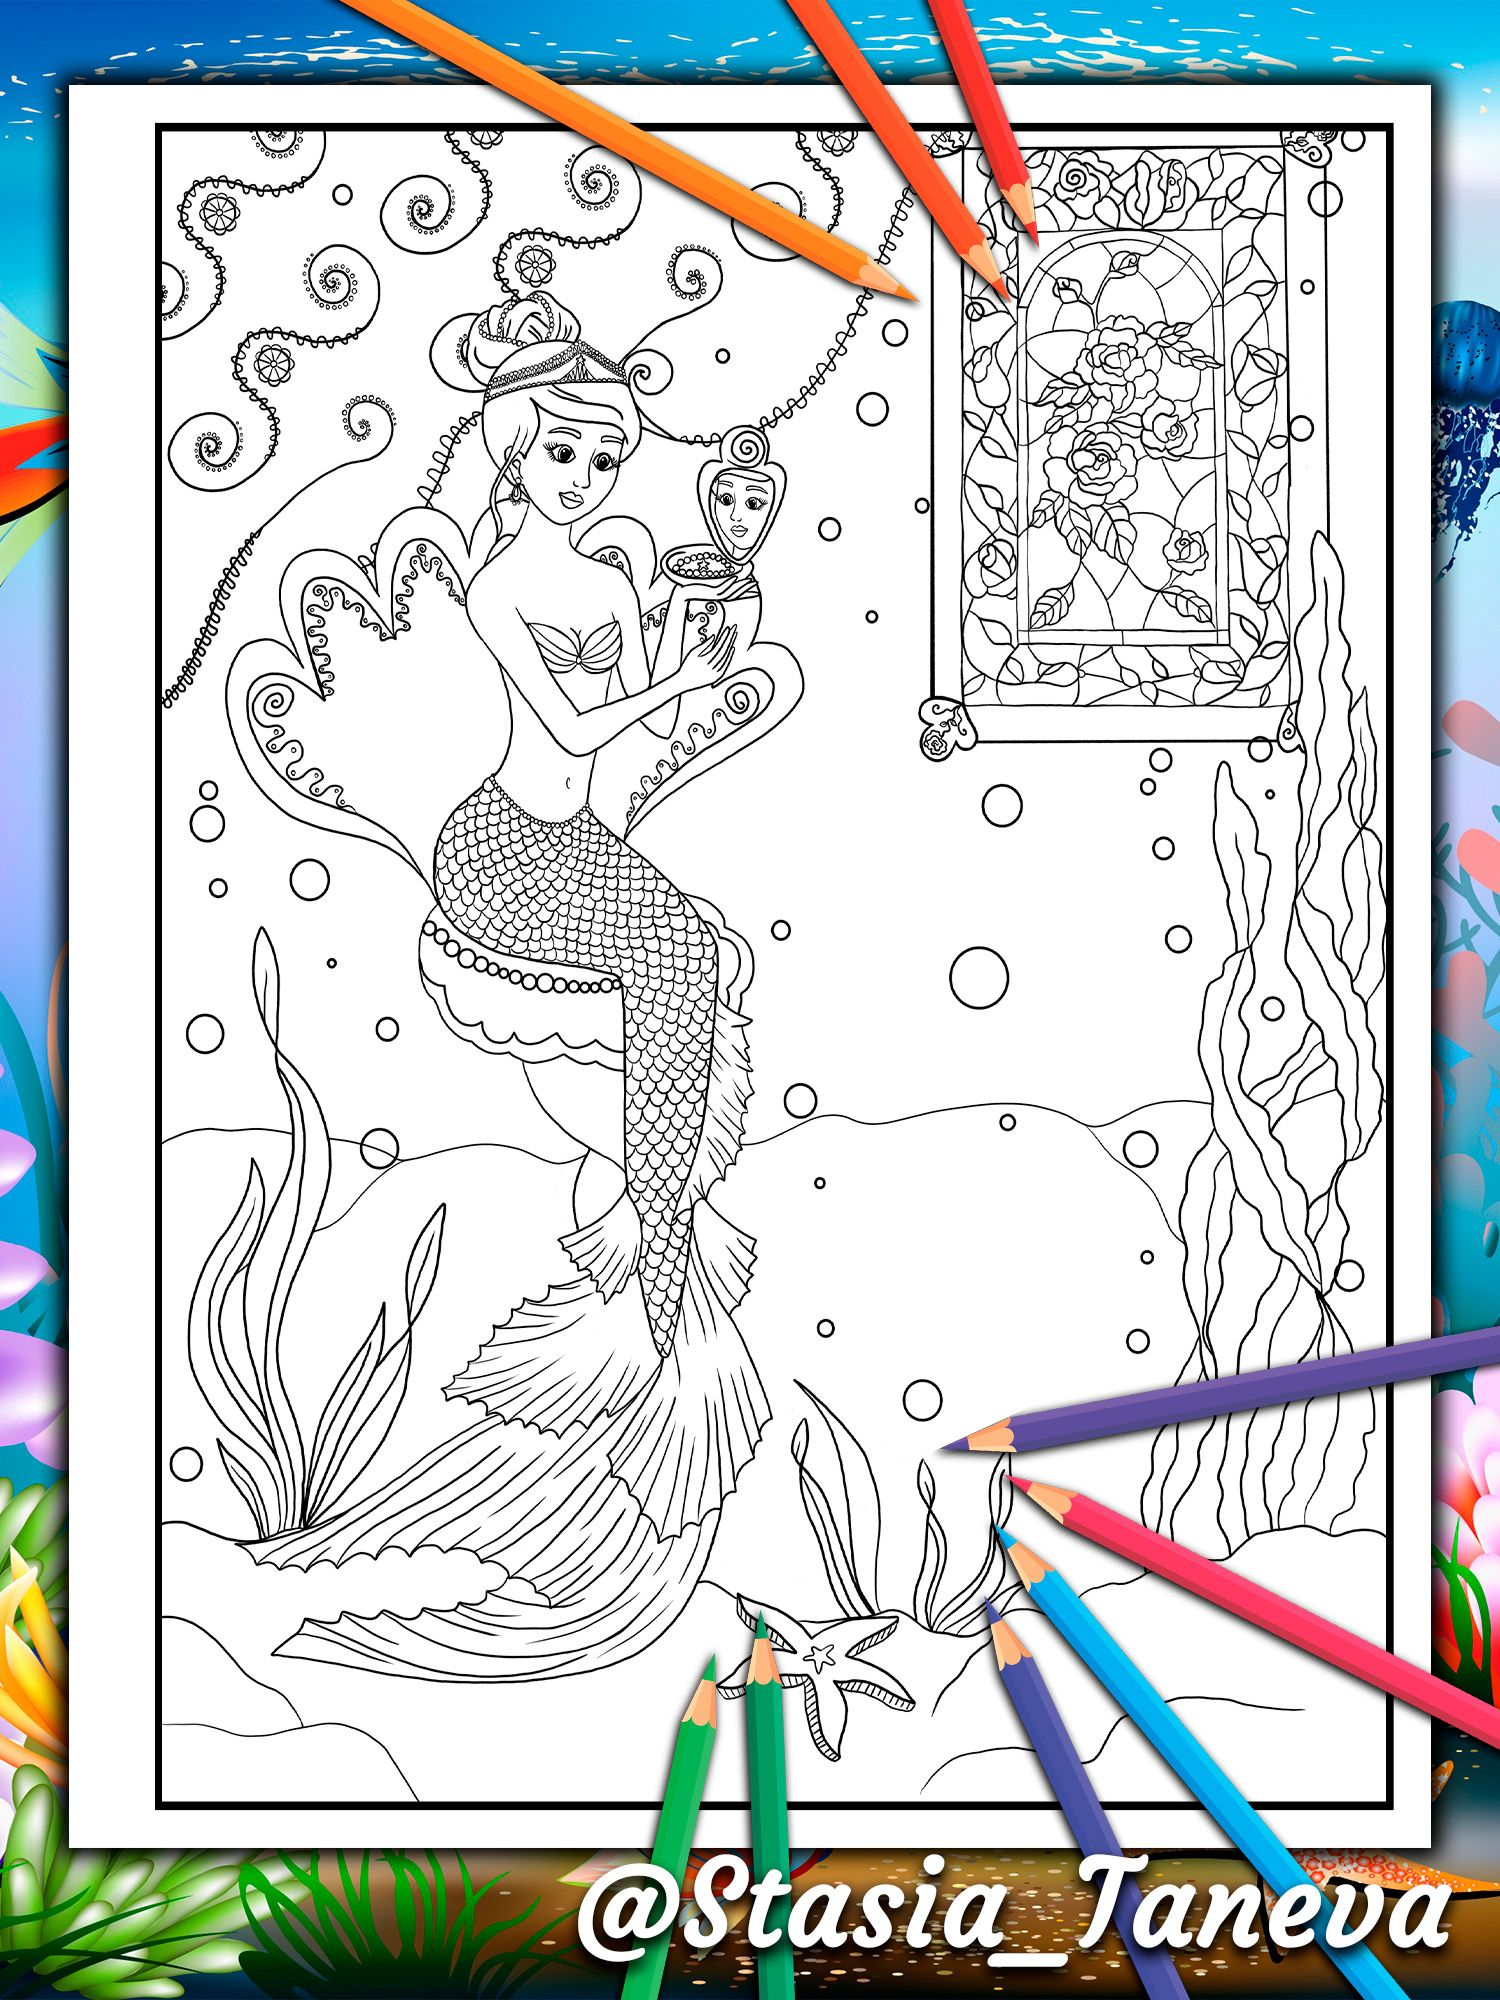 Mermaid On The Background Of A Beautiful Stained Glass Window With Roses Mermaid Coloring Book 18 Mermaid Coloring Book Unique Coloring Pages Mermaid Coloring [ 2000 x 1500 Pixel ]